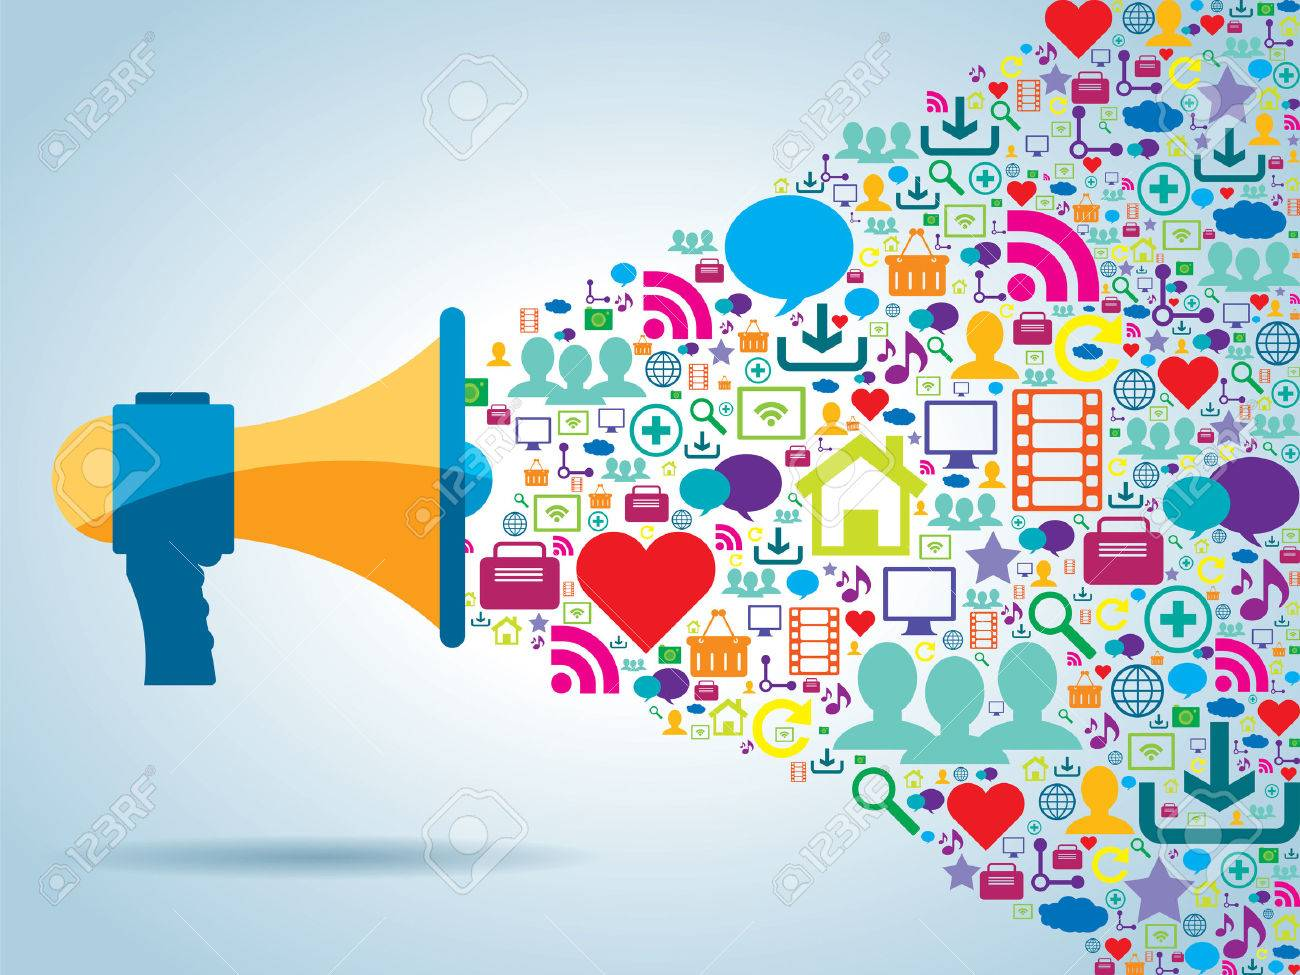 communication and promotion strategy with social media - 31295122